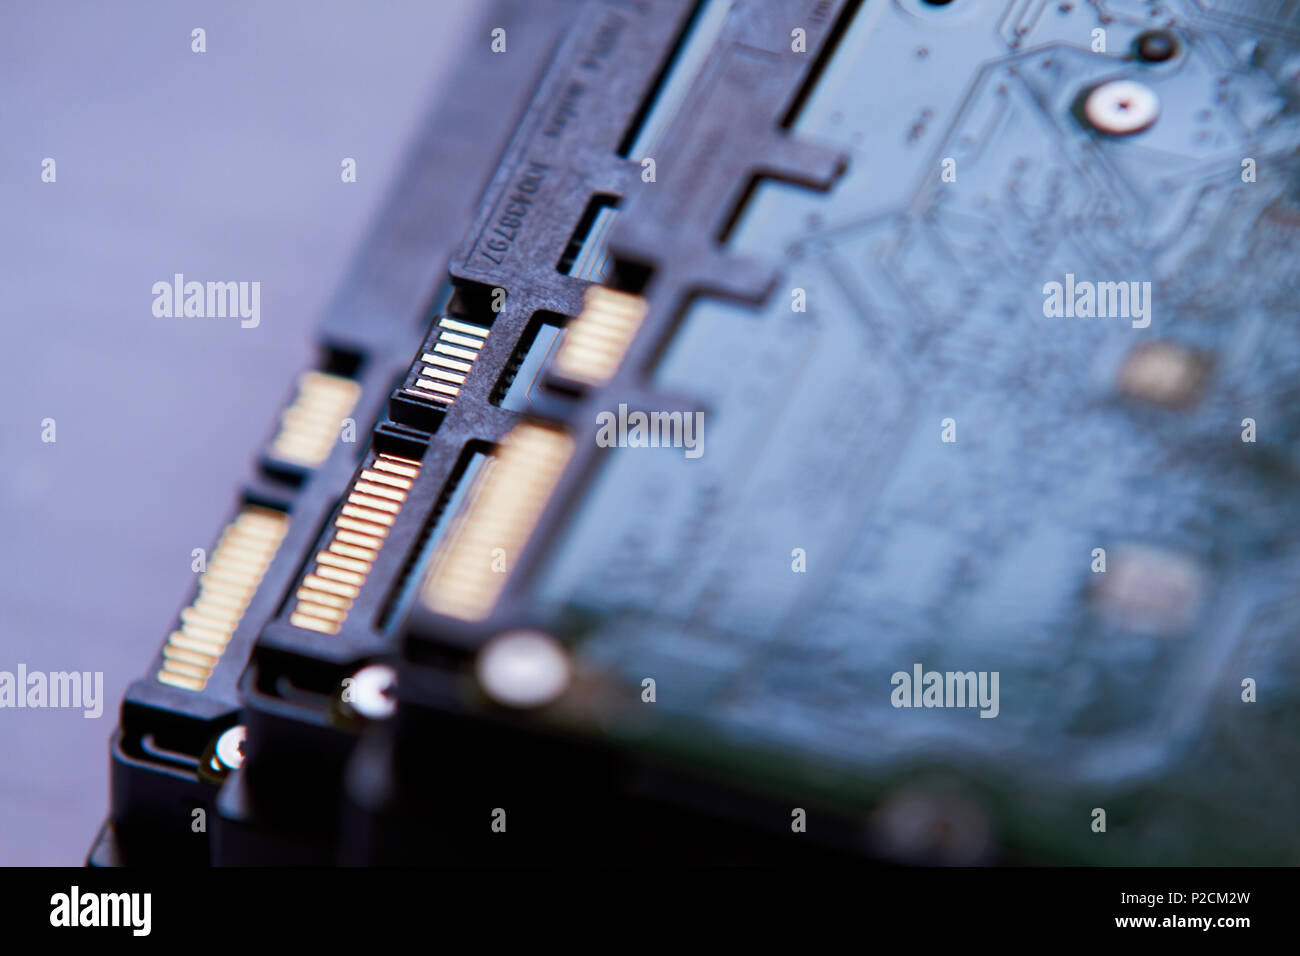 Hard Drive board and connection Stock Photo